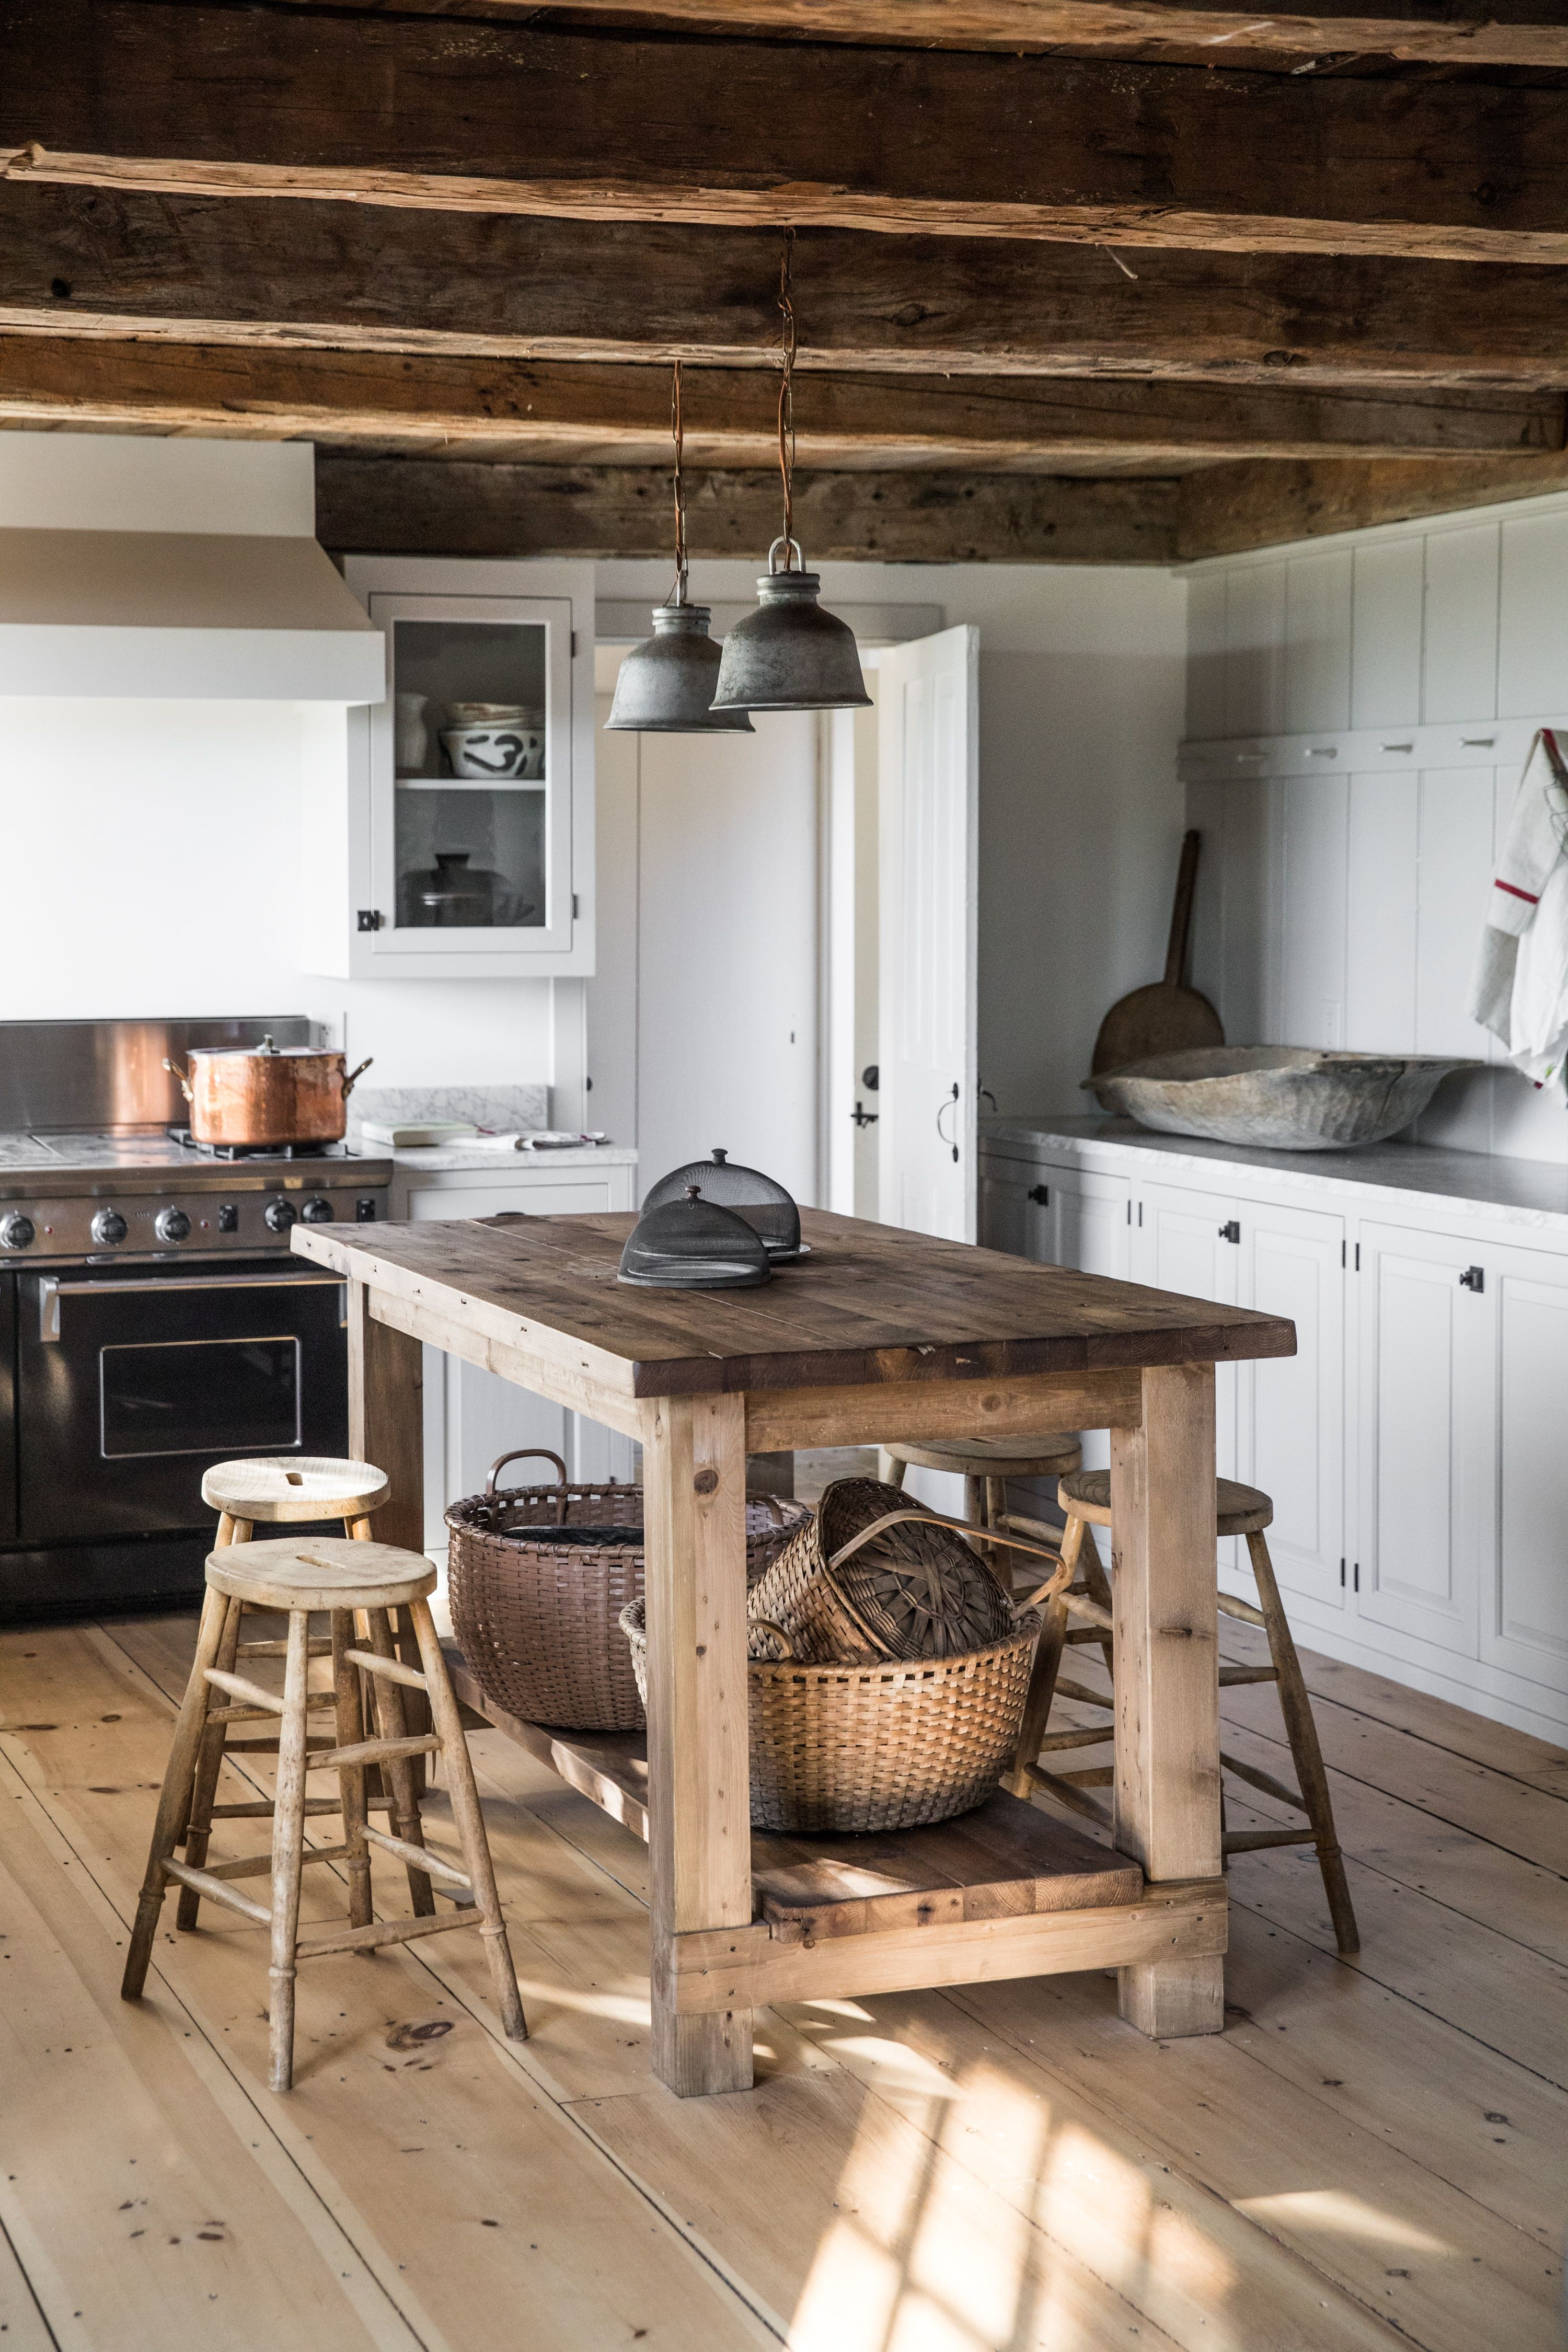 Step Inside a Farmhouse Kitchen in Maine with Modern Upgrades is part of Step Inside A Farmhouse Kitchen In Maine With Modern Upgrades - Sculptorturnedbuilder Anthony Esteves remodeled a historic Cape on the island of Spruce Head for his mother complete with a modern farmhouse kitchen